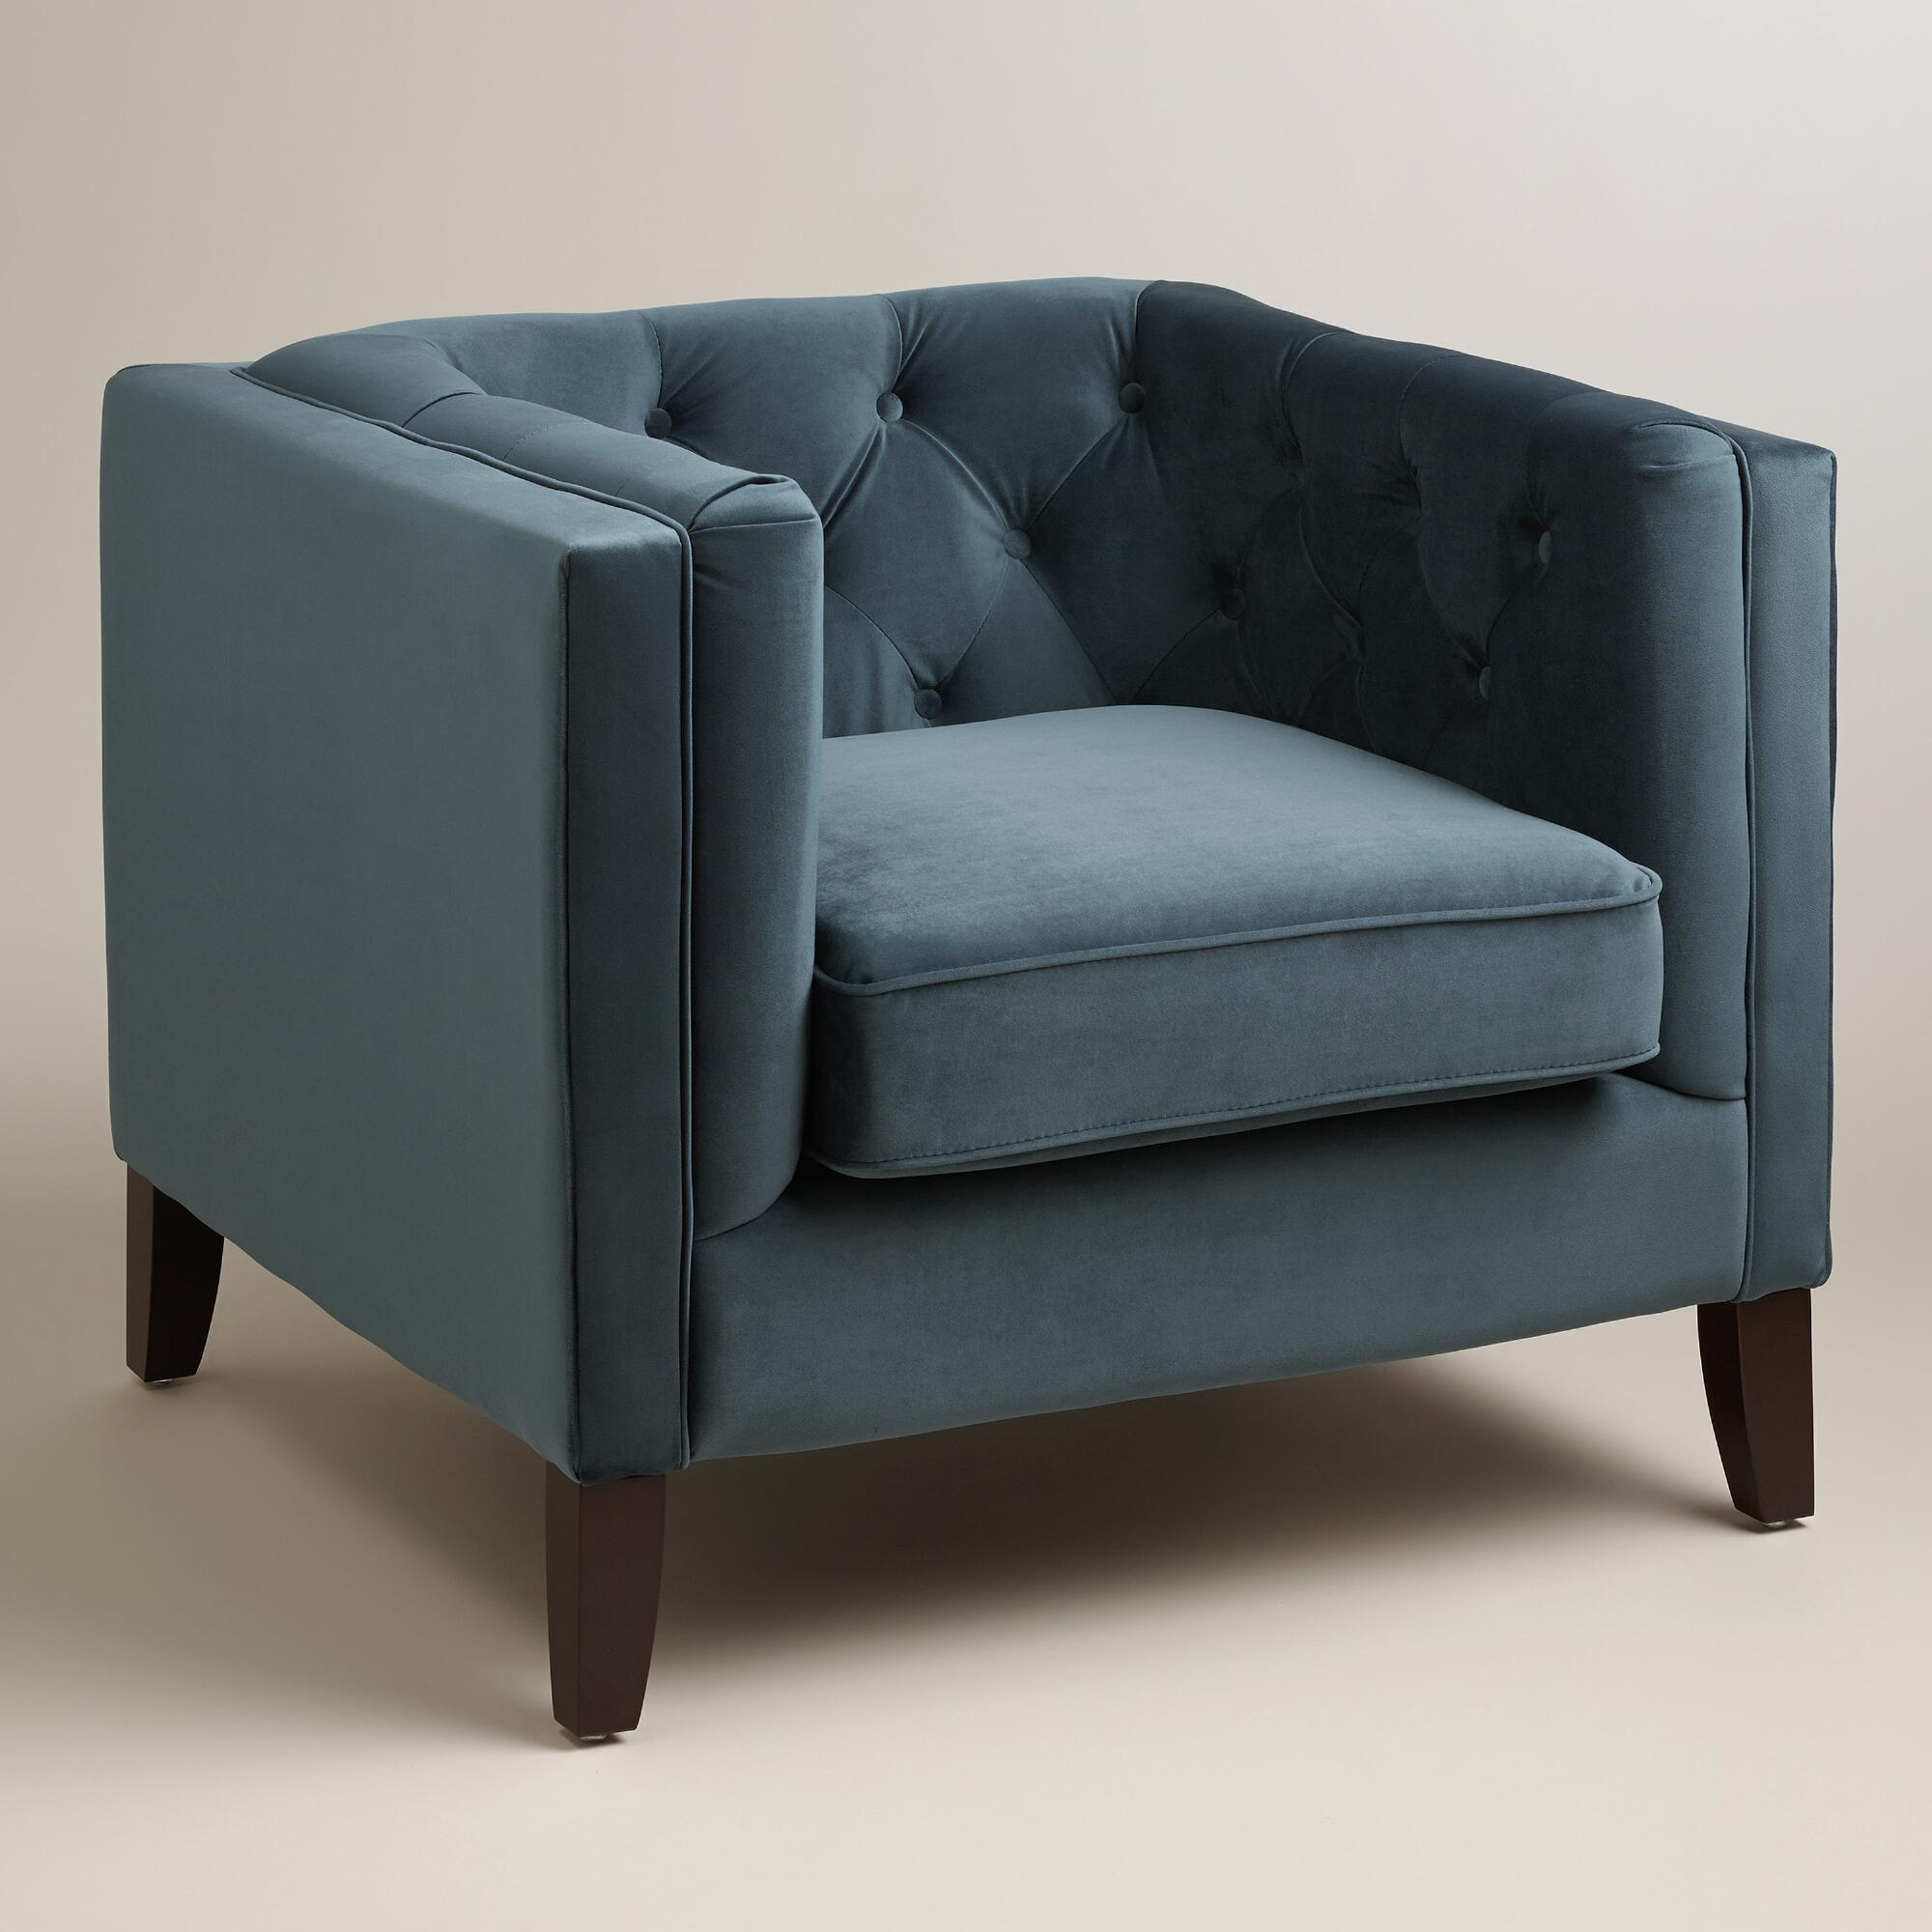 Midnight Blue Kendall Velvet Chair by World Market Cost Plus